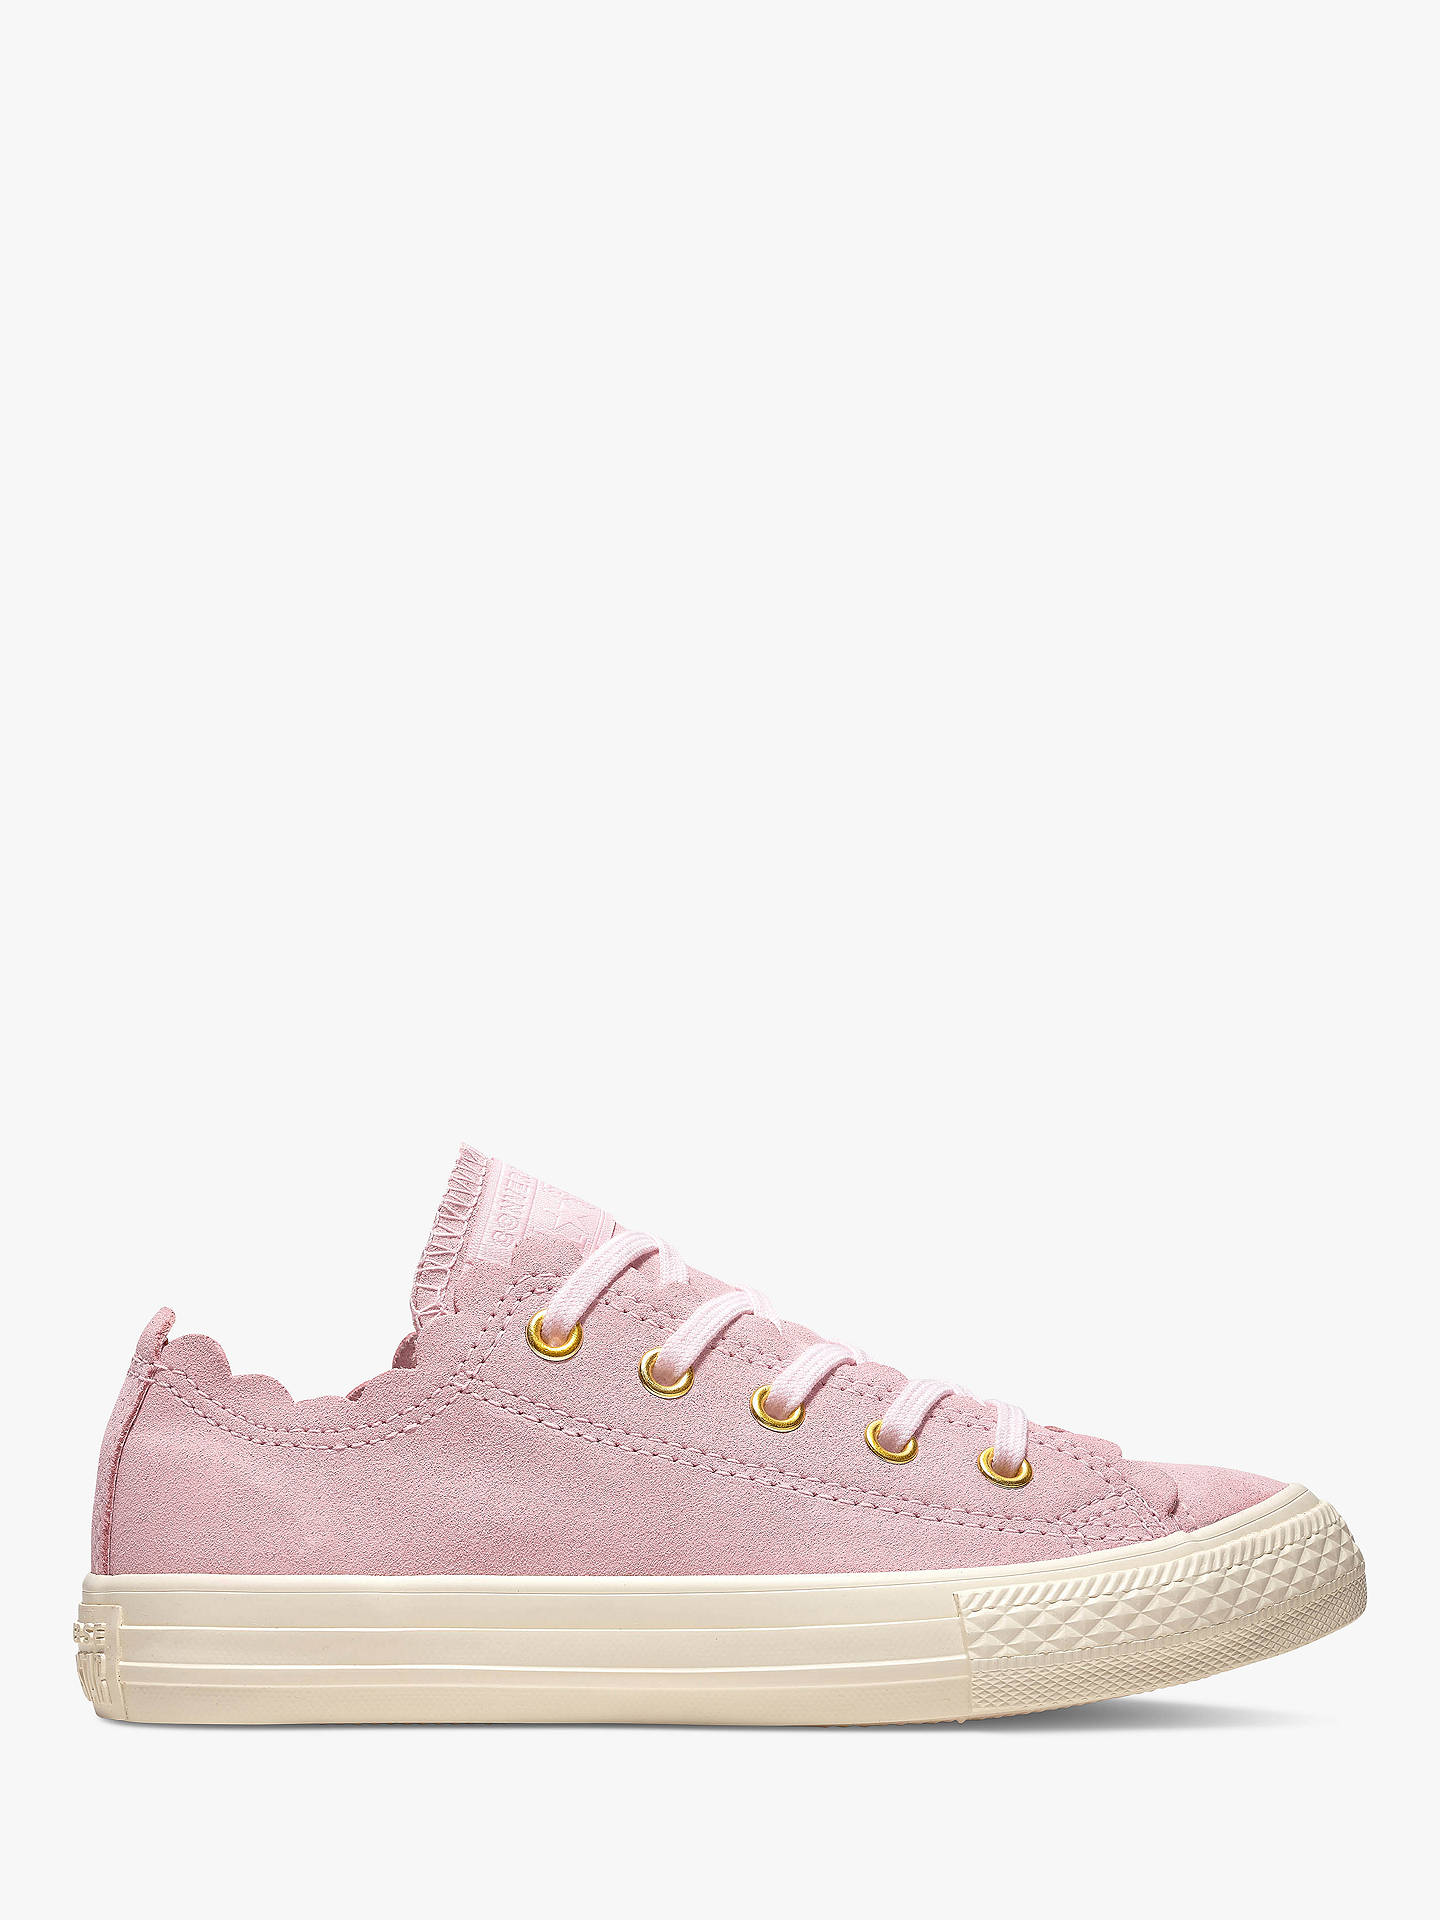 e78e97c4c6956c Converse Chuck Taylor All Star Suede Scallop Trainers at John Lewis ...